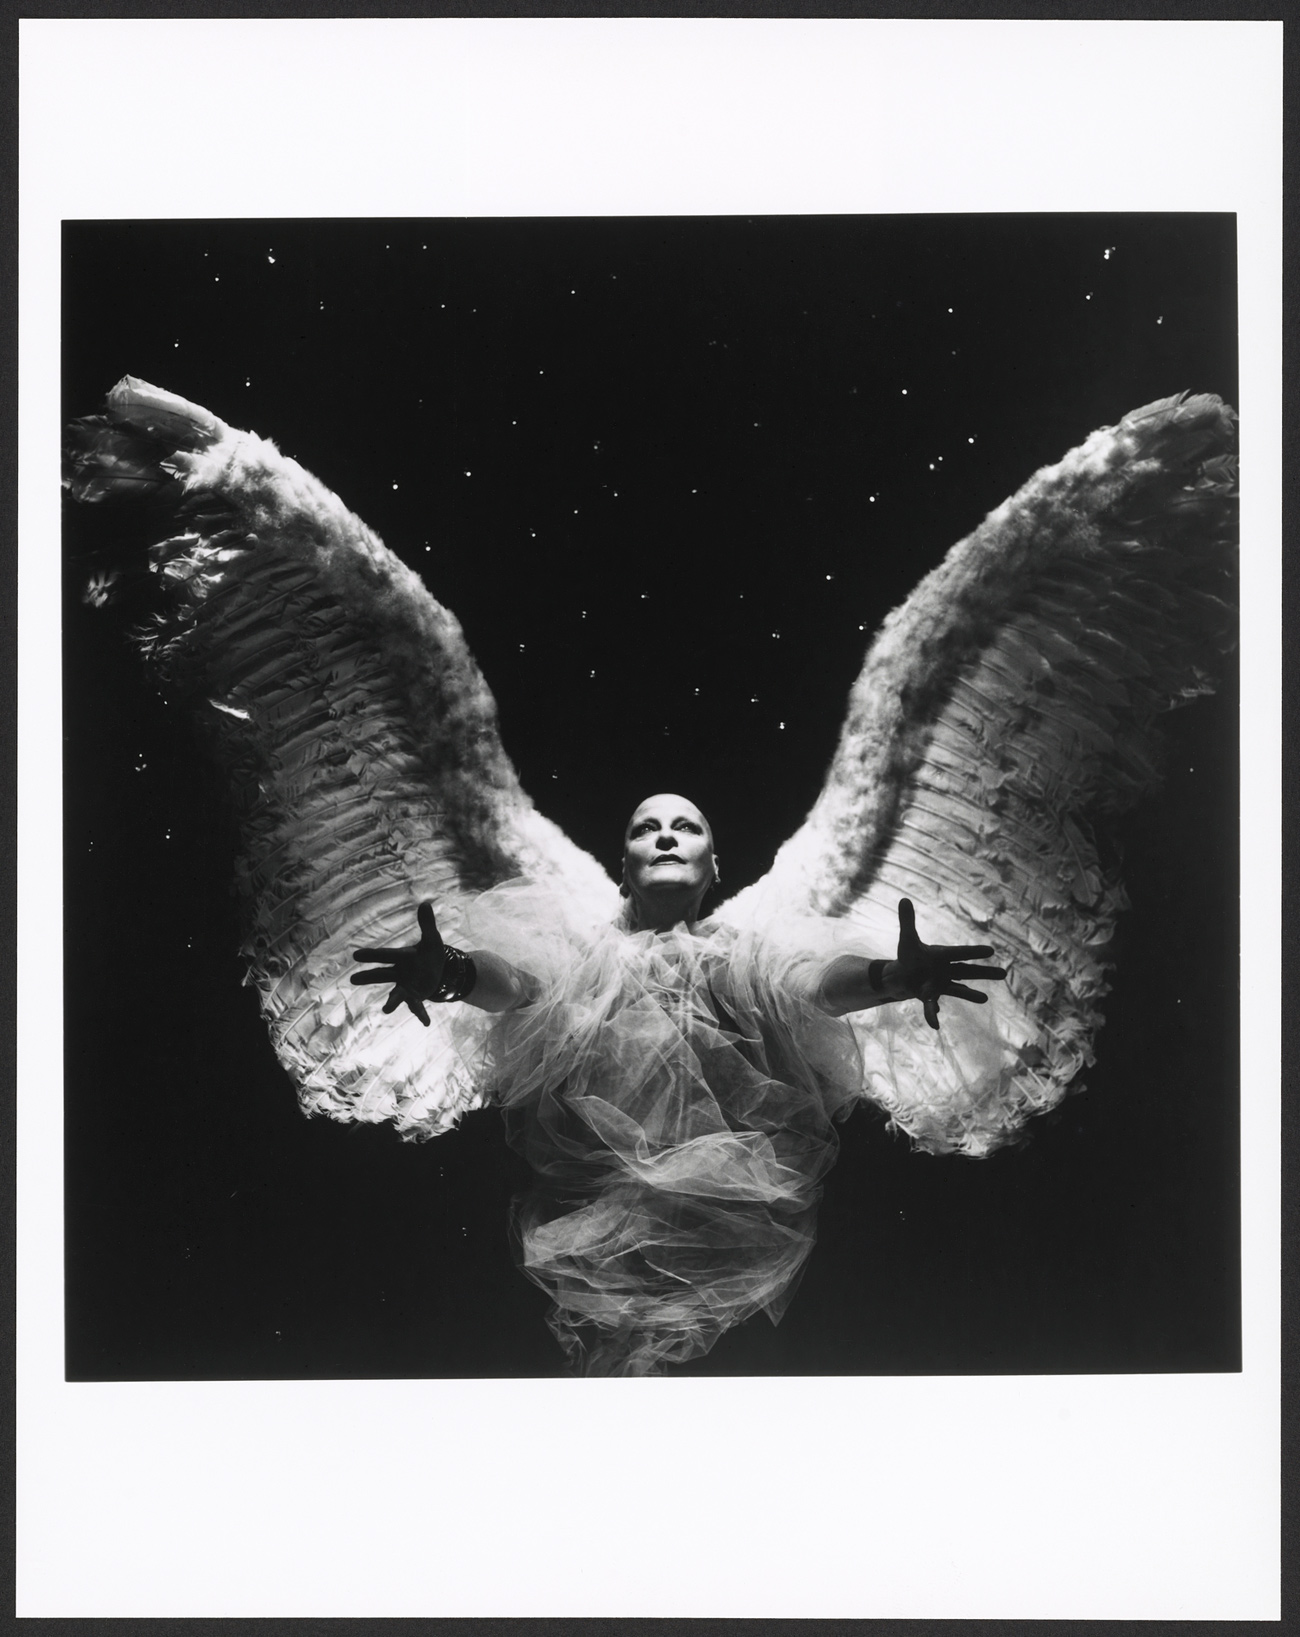 Rosenthal wears large angel wings against a stark black background